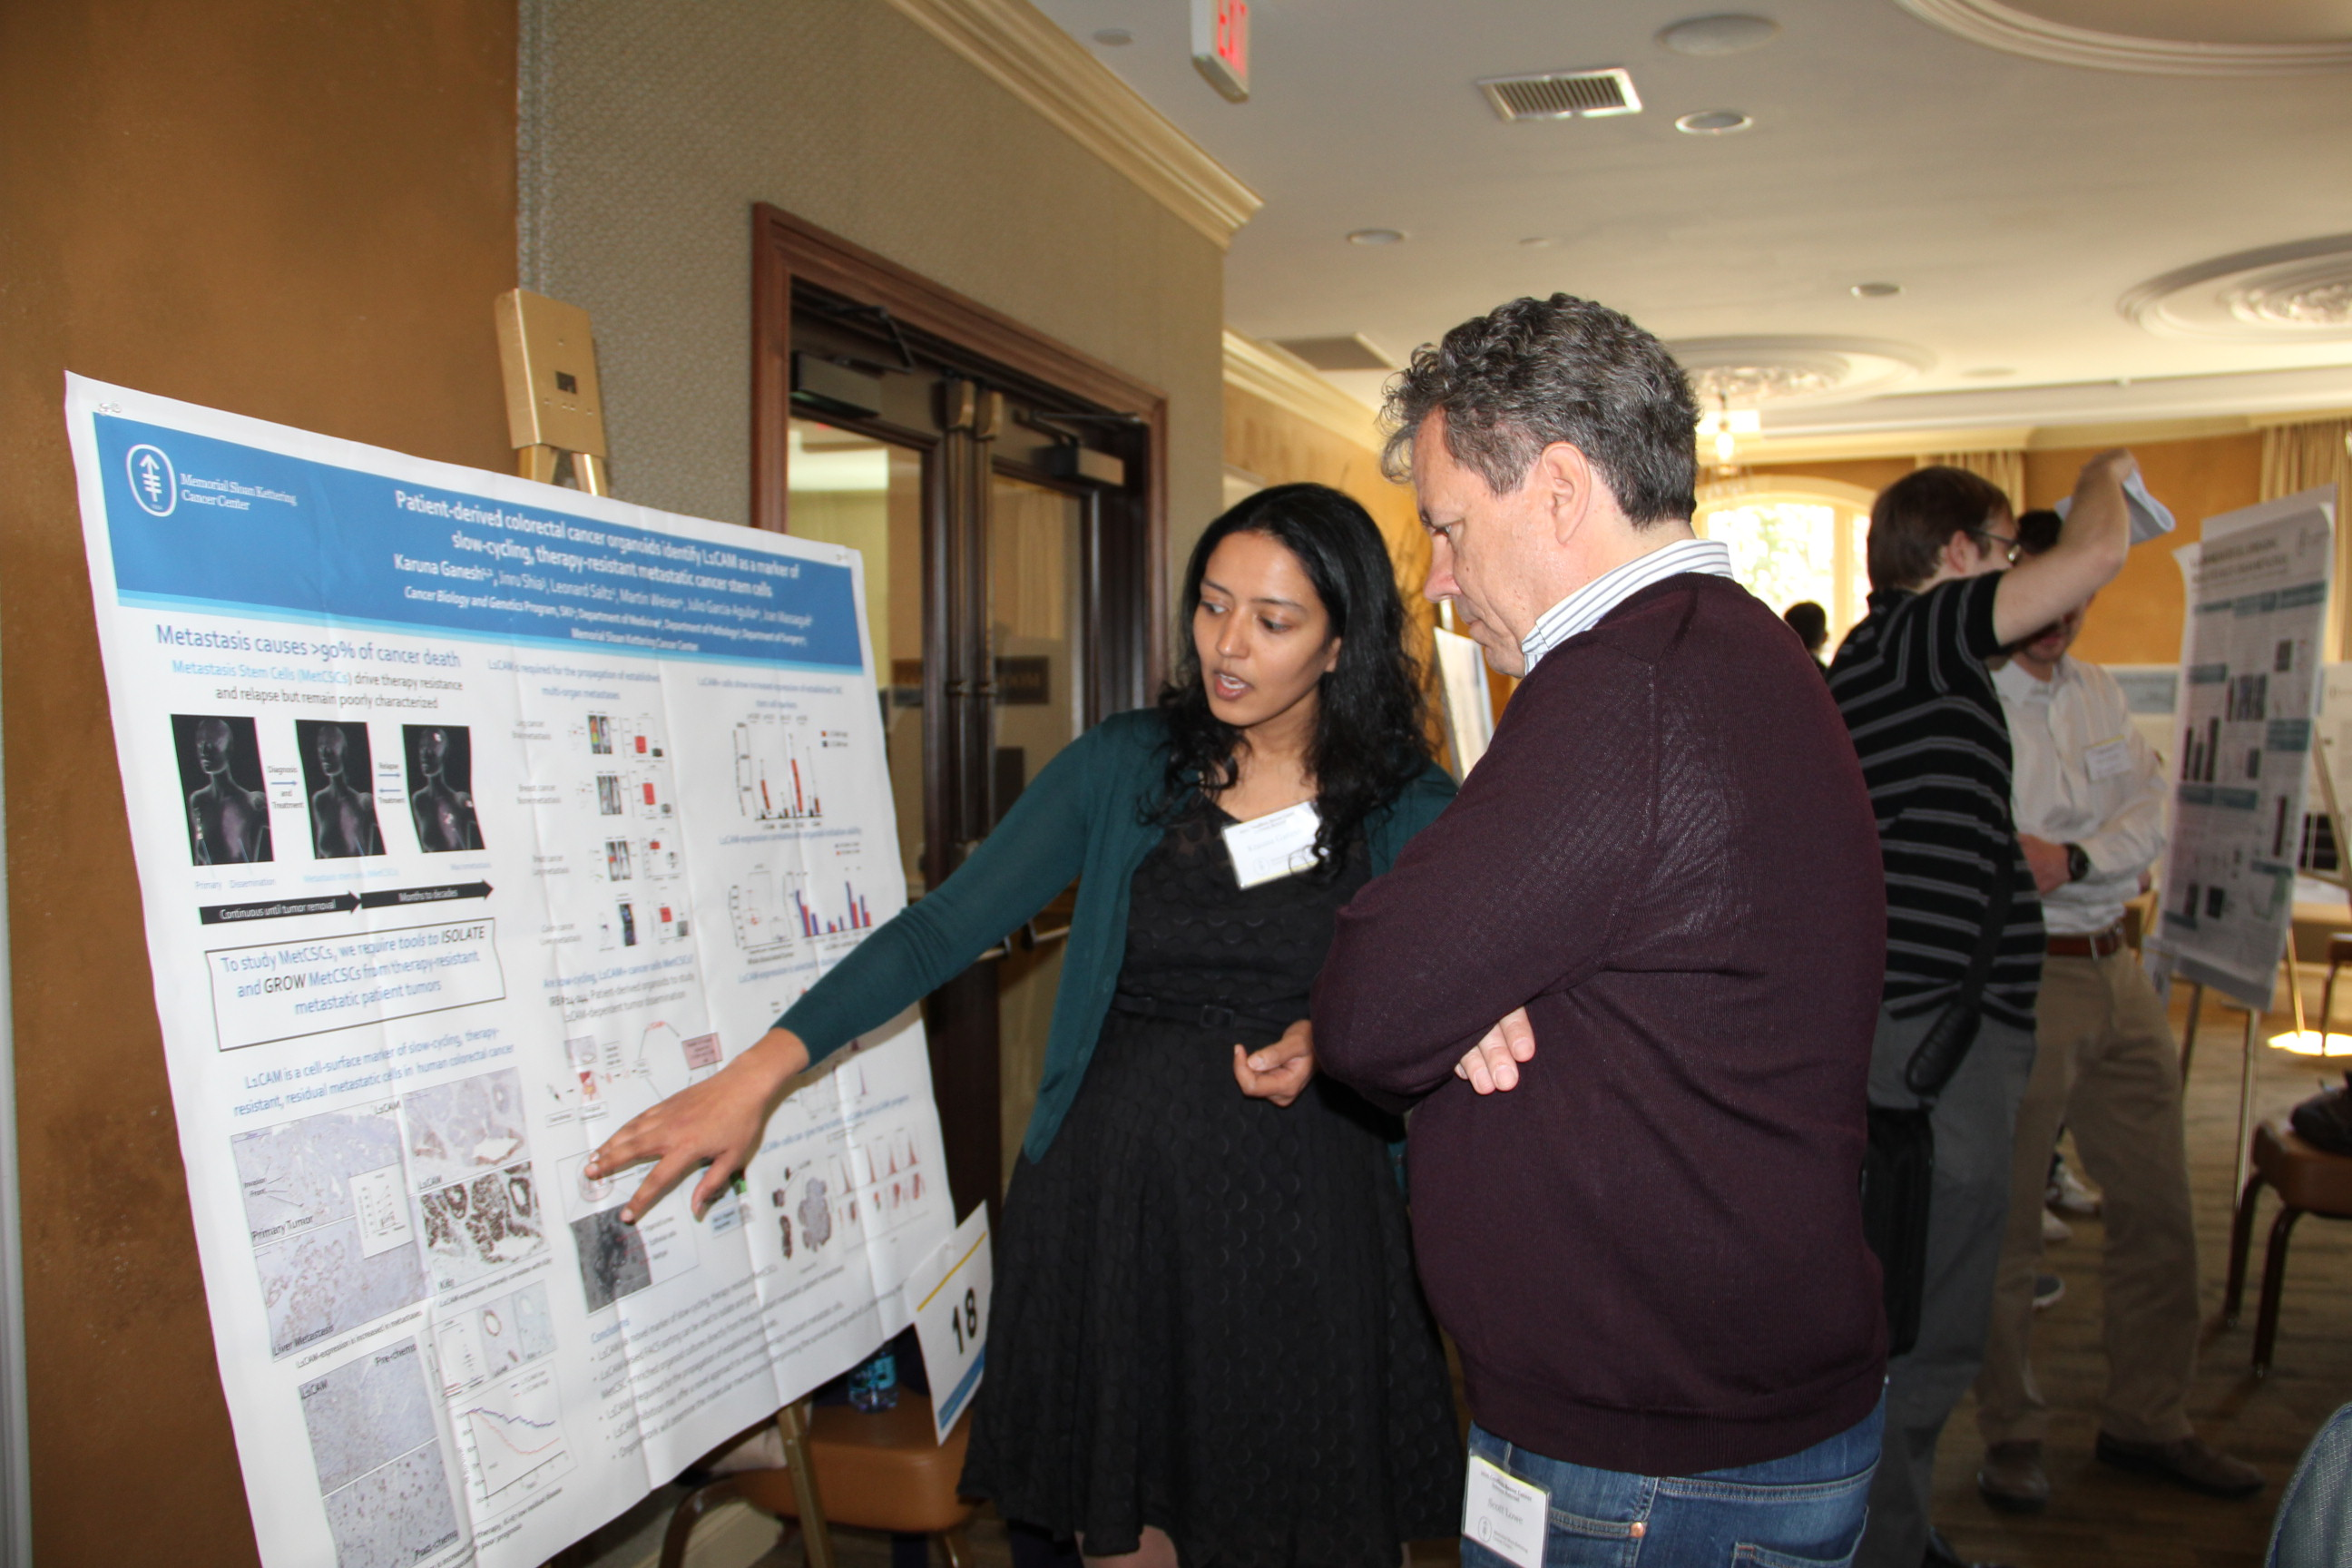 Cancer Biology & Genetics Program Chair Scott Lowe with physician-scientist Karuna Ganesh.